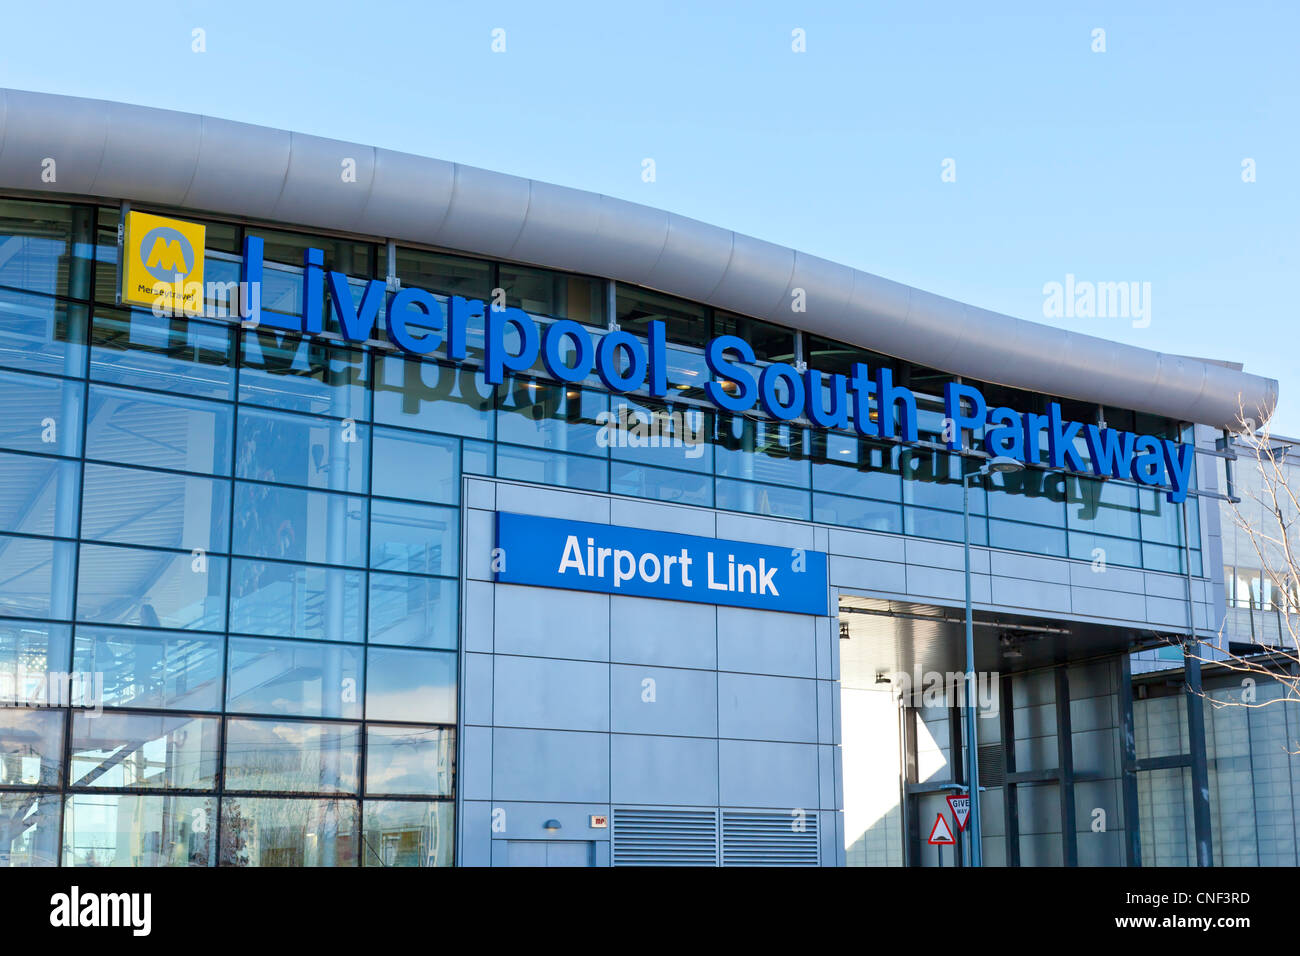 Liverpool South Parkway Station, Garston, Liverpool - Stock Image